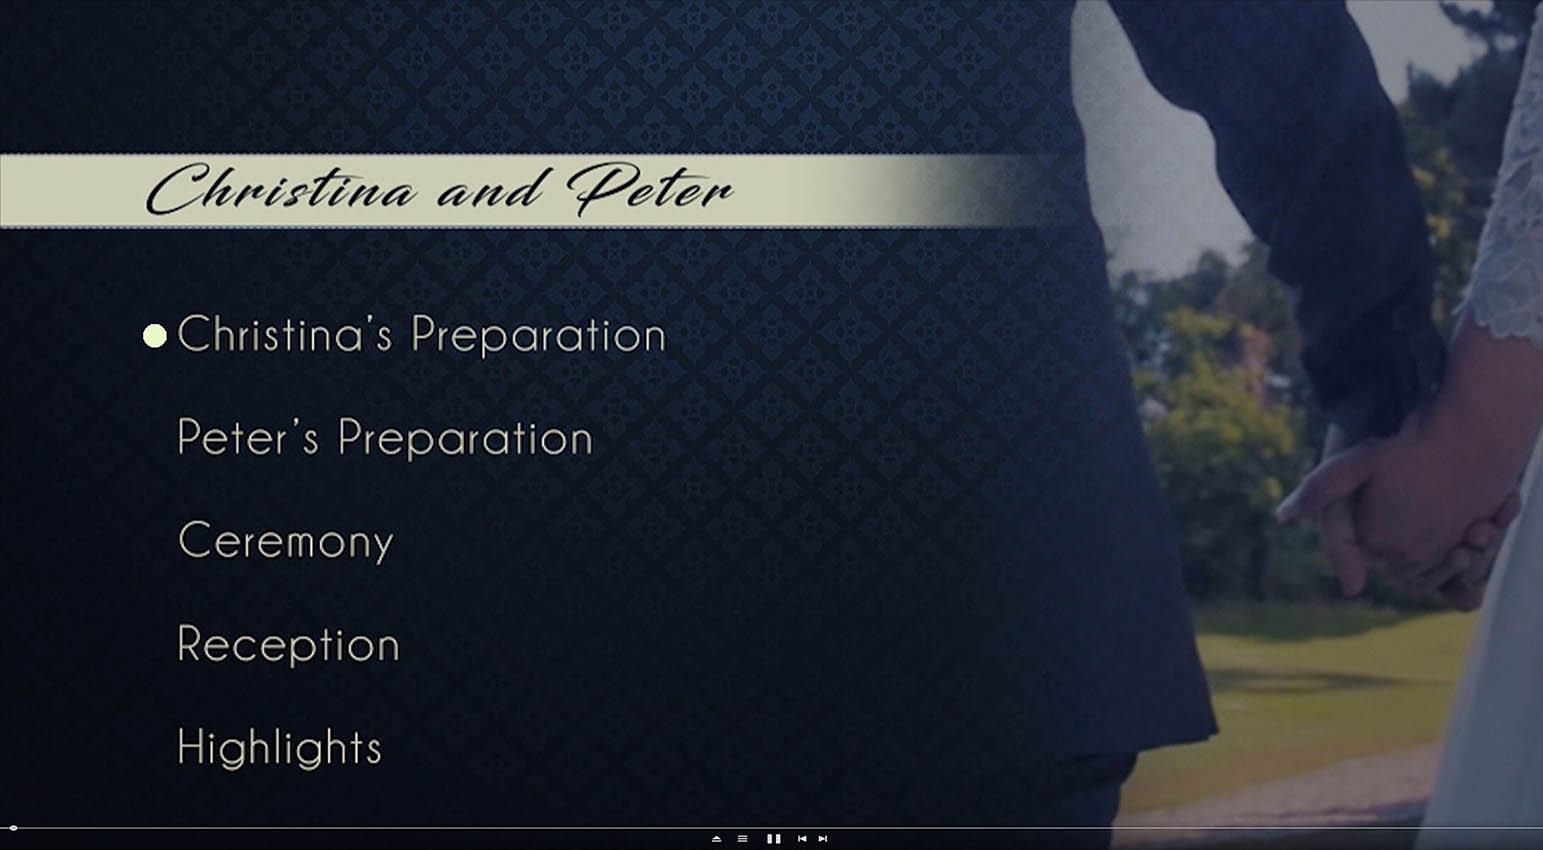 A BluRay menu sample of a wedding videography